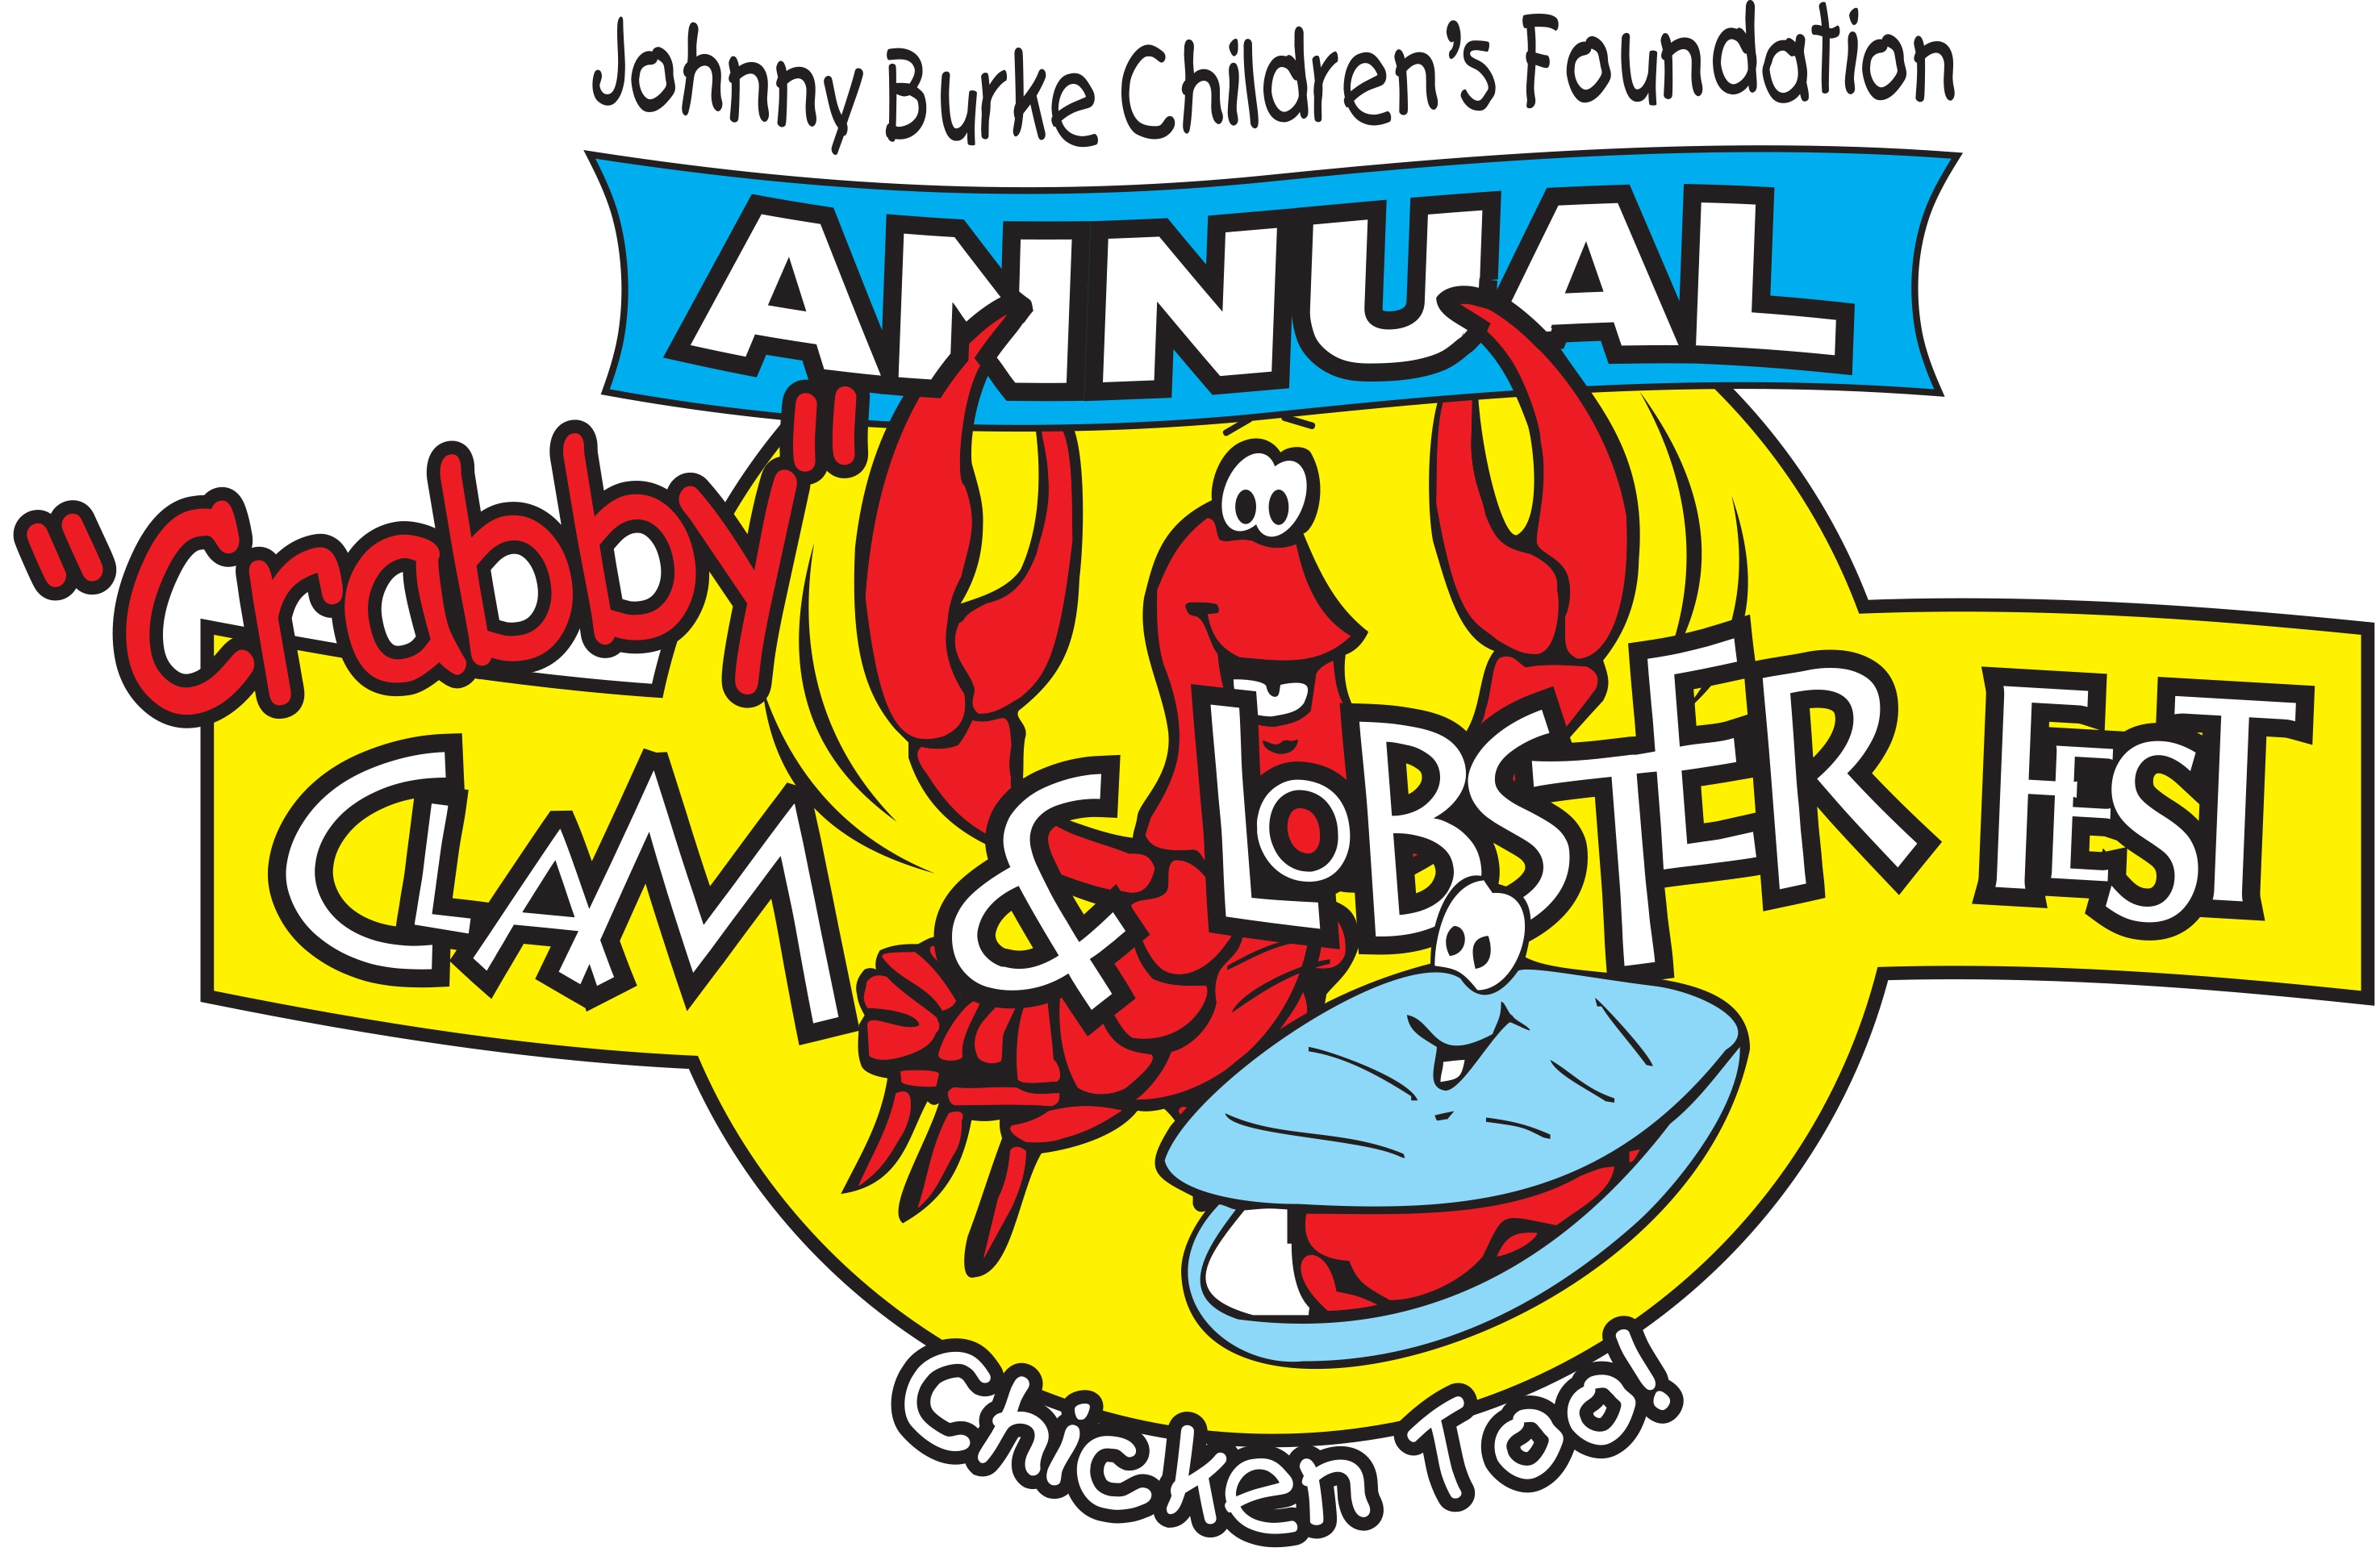 Crabby Clam & Lobster Fest